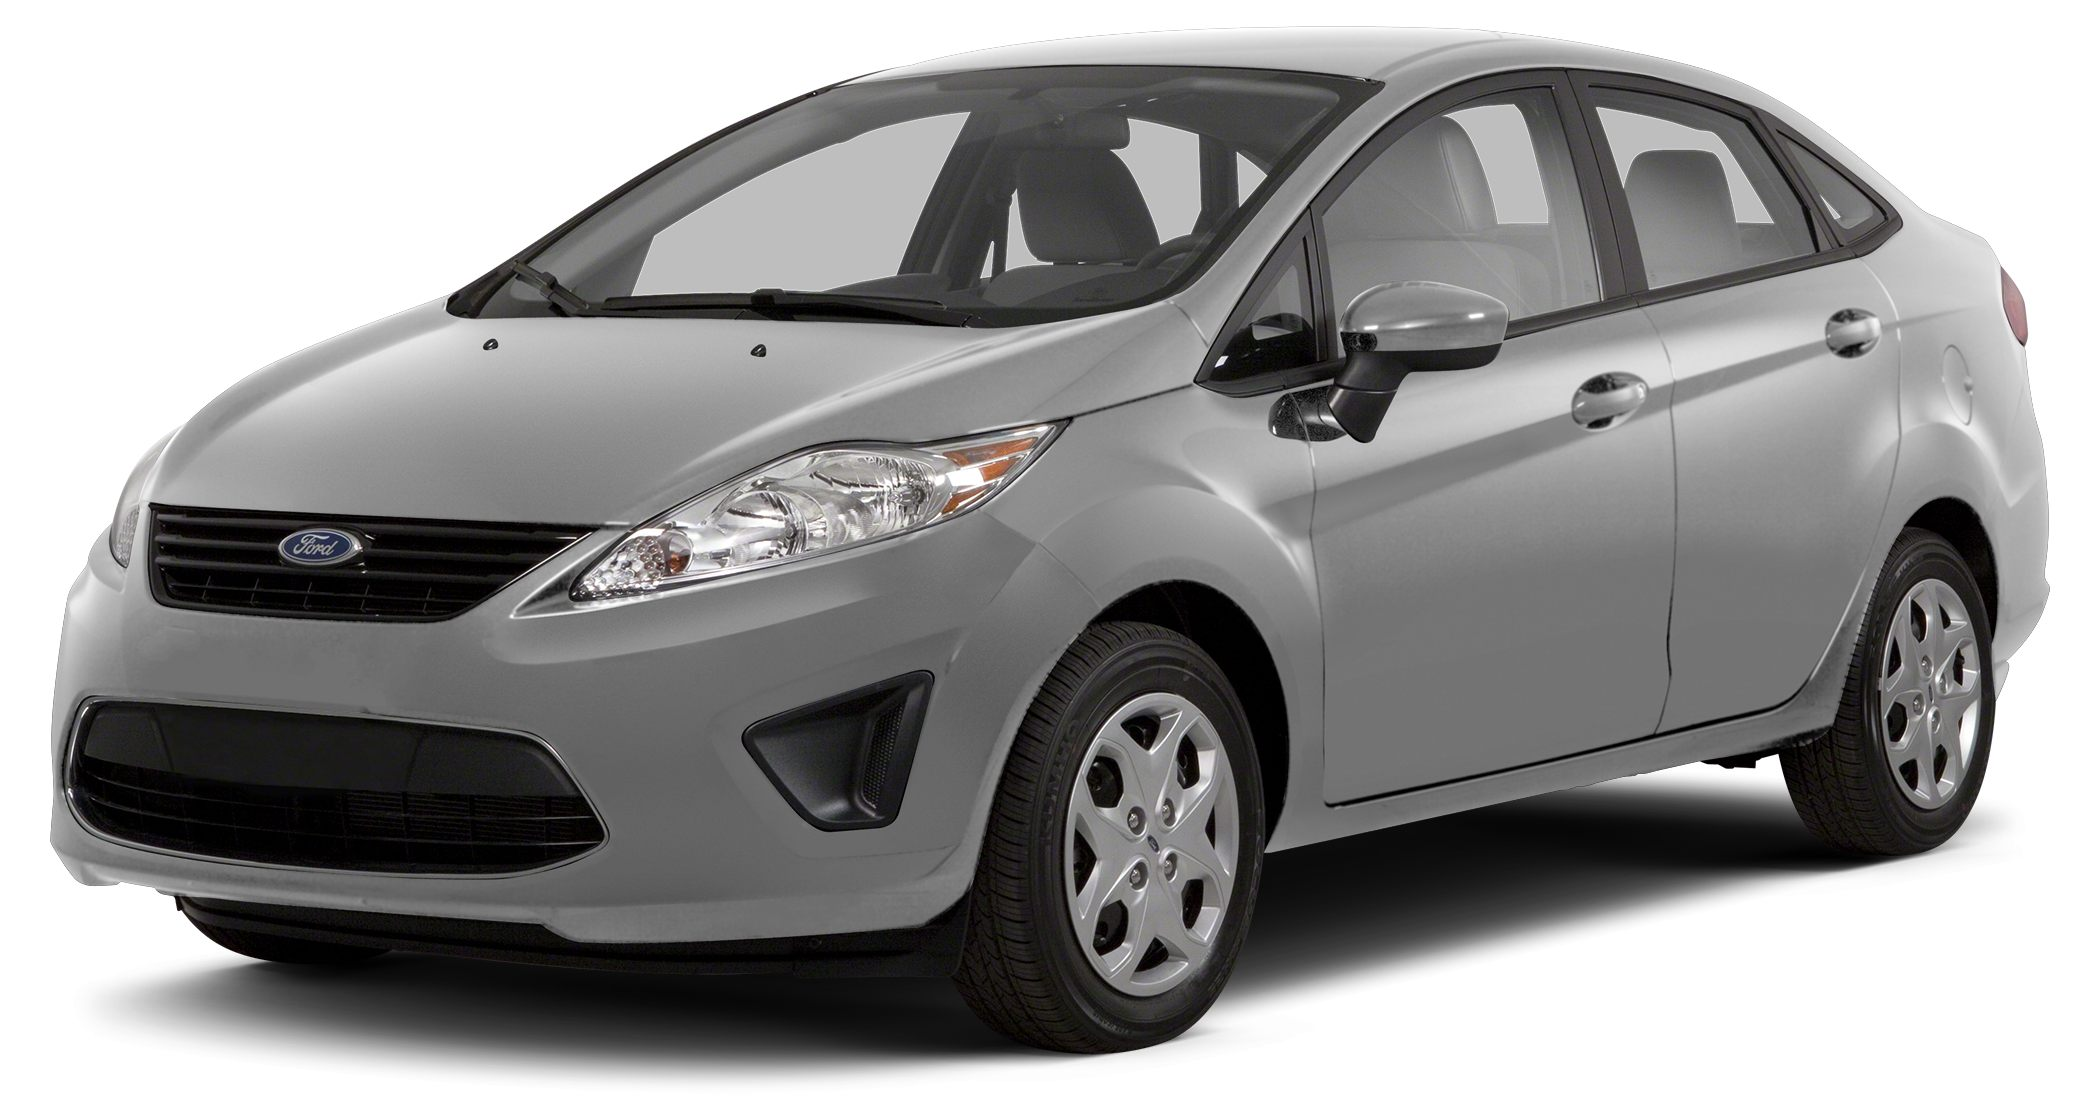 2013 Ford Fiesta SE CARFAX 1-Owner GREAT MILES 27287 SE trim FUEL EFFICIENT 39 MPG Hwy29 MPG